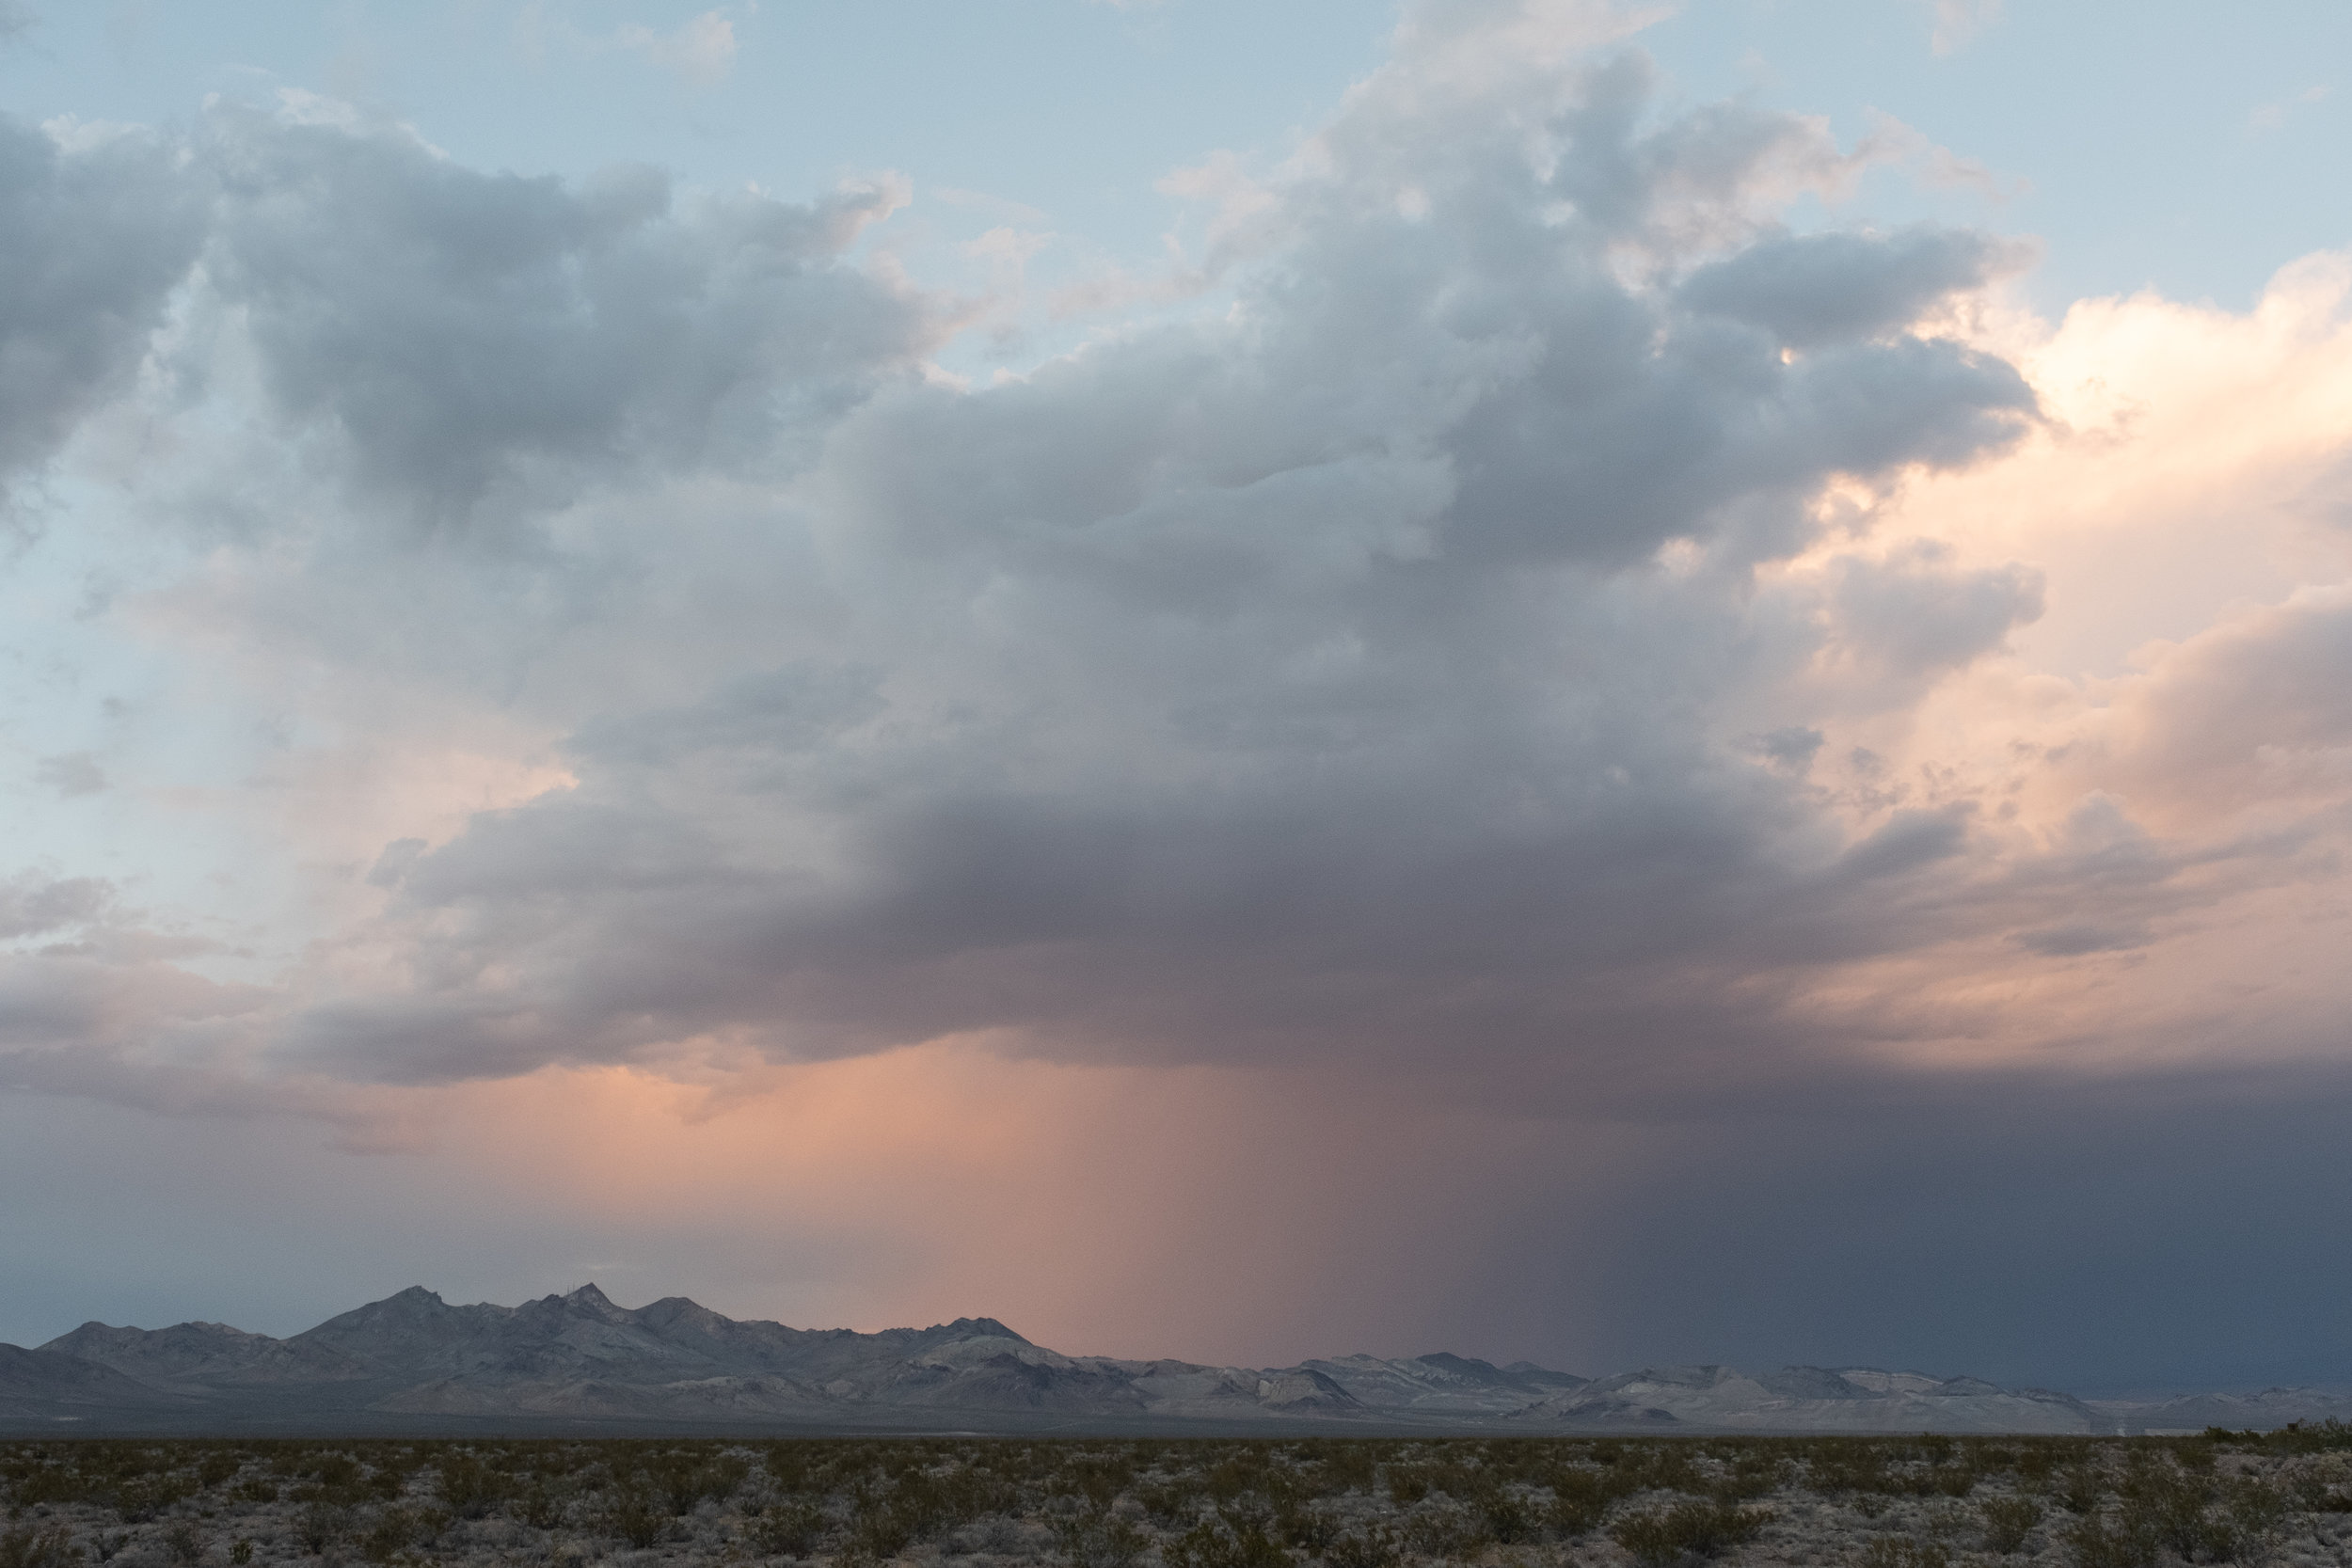 Clearing Storm, Death Valley National Park